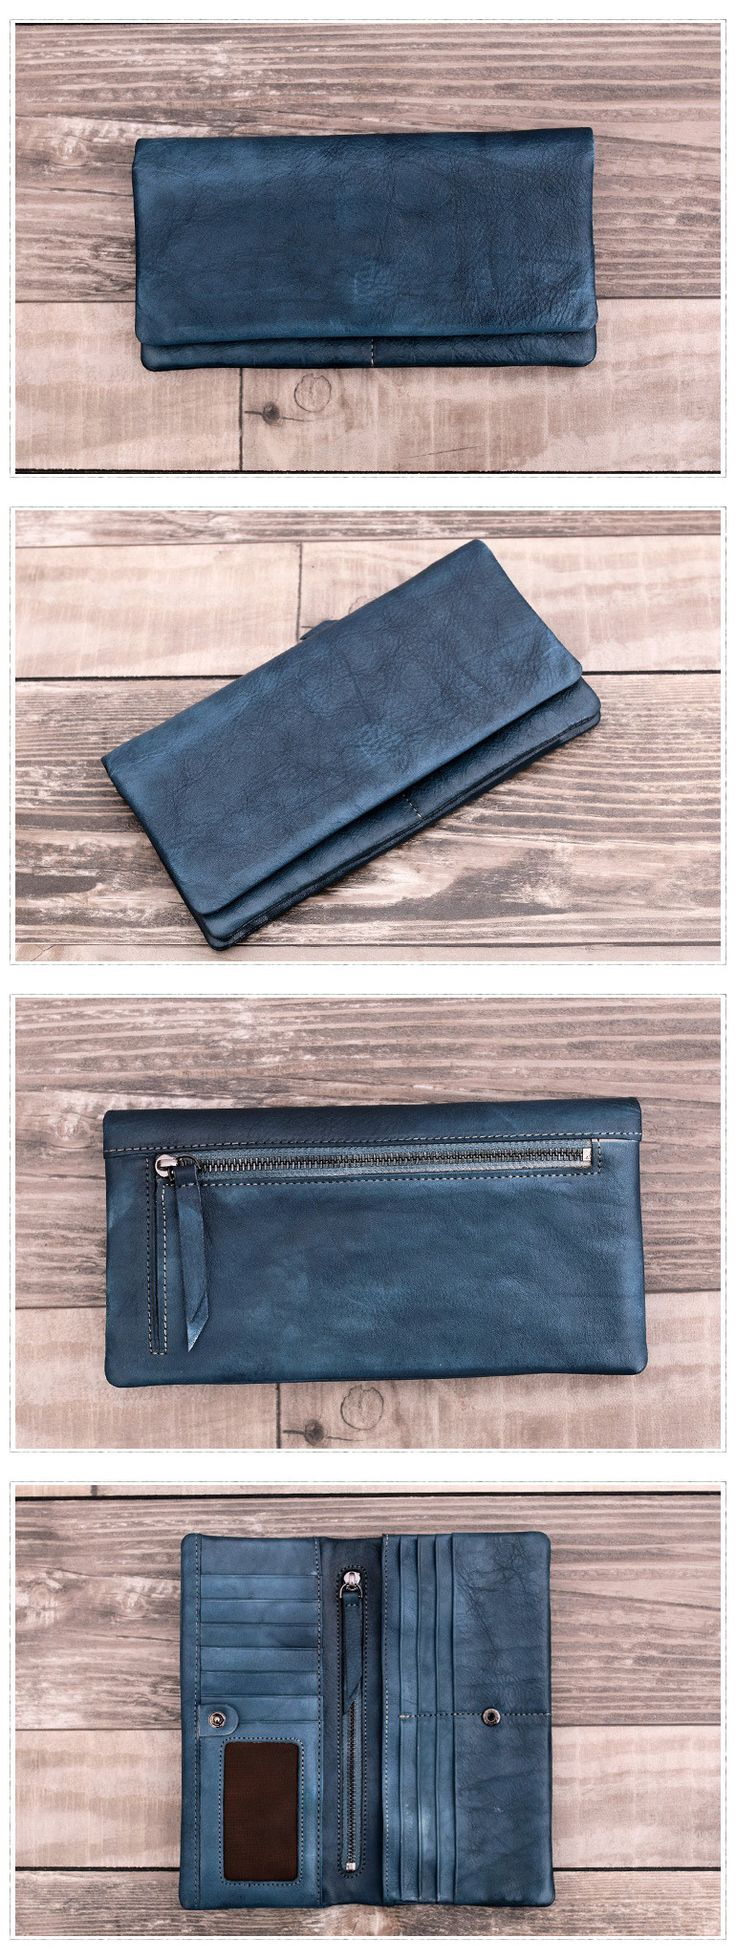 Vintage Style Genuine Natural Leather Wallet Long Wallet Men's Wallet Dimensions: Length: 19.5 cm; Height: 10 cm Color: Blue/Black/Grey